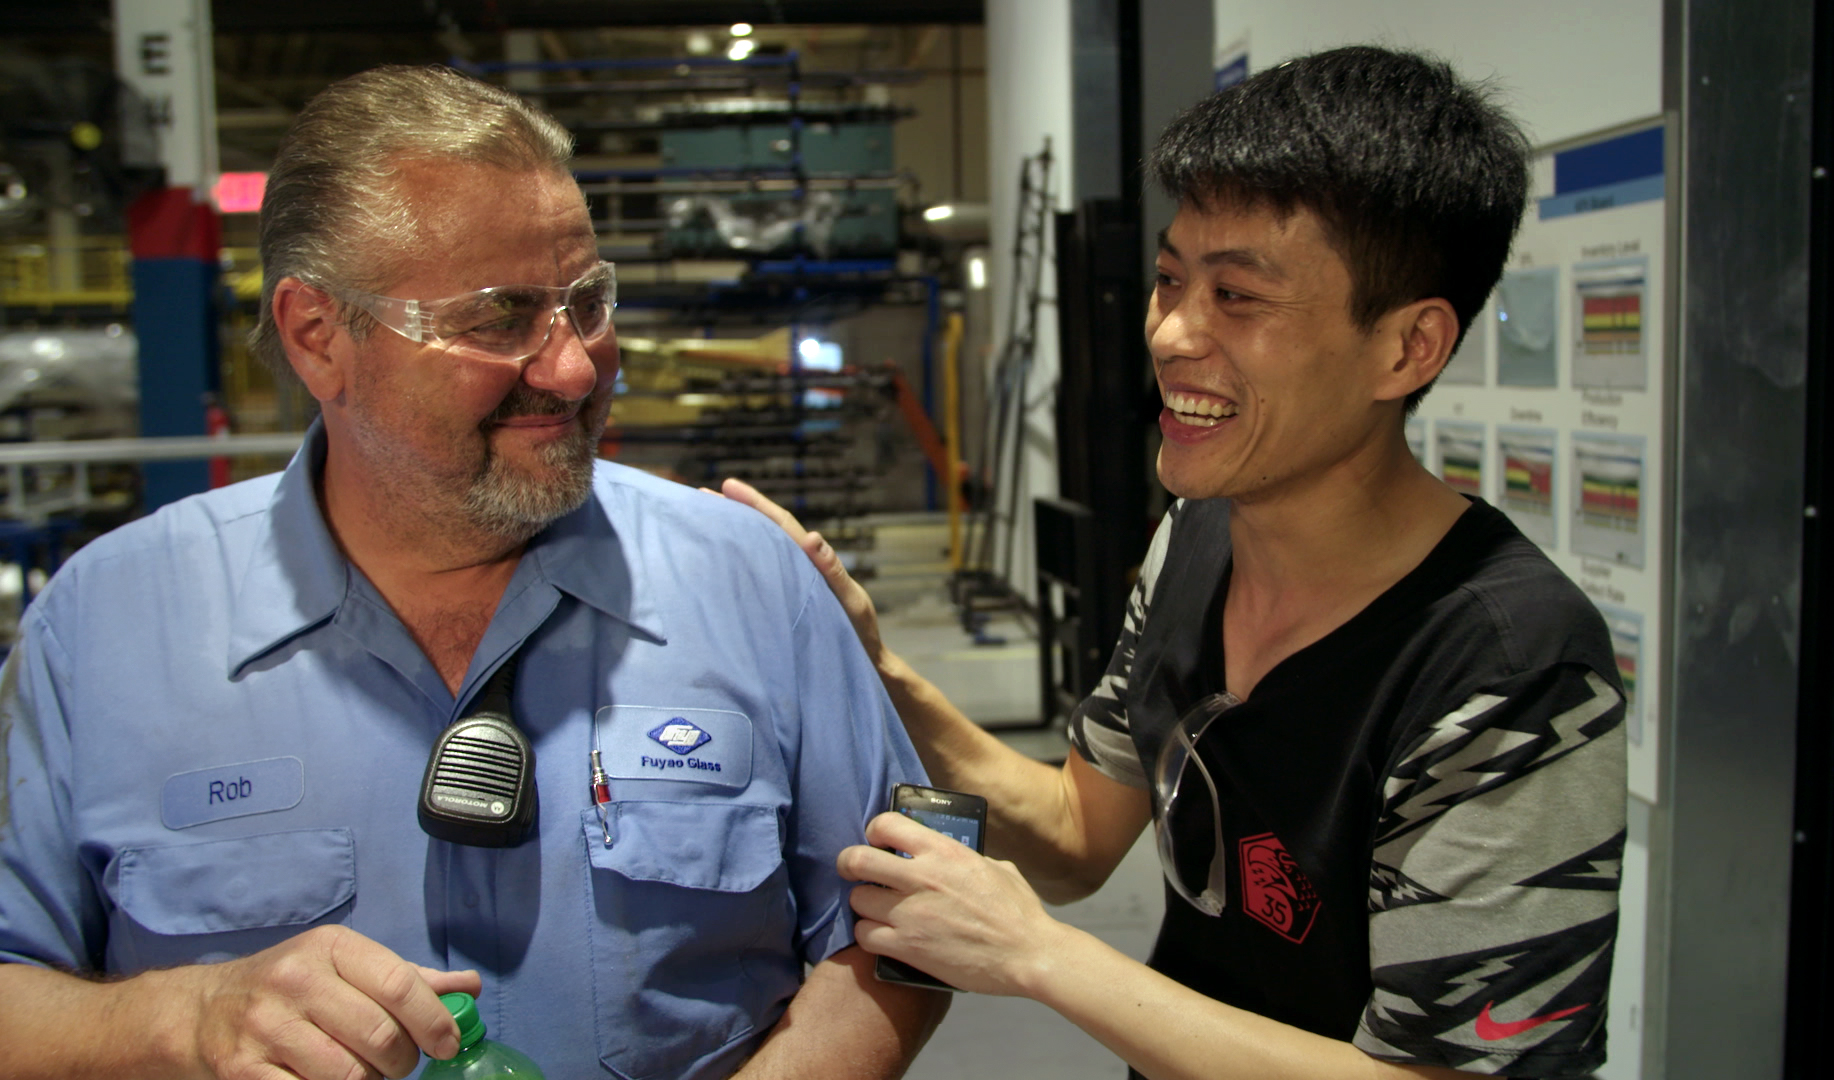 """Rob Haerr, left, and Wong He, are unexpected co-workers at an Ohio auto-glass plant begun by a Chinese billionaire, in """"American Factory,"""" by Steve Bognar and Julia Reichert, an official selection in the U.S. Documentary Competition of the 2019 Sundance Film Festival. (Photo by Ian Cook, courtesy Sundance Institute)"""